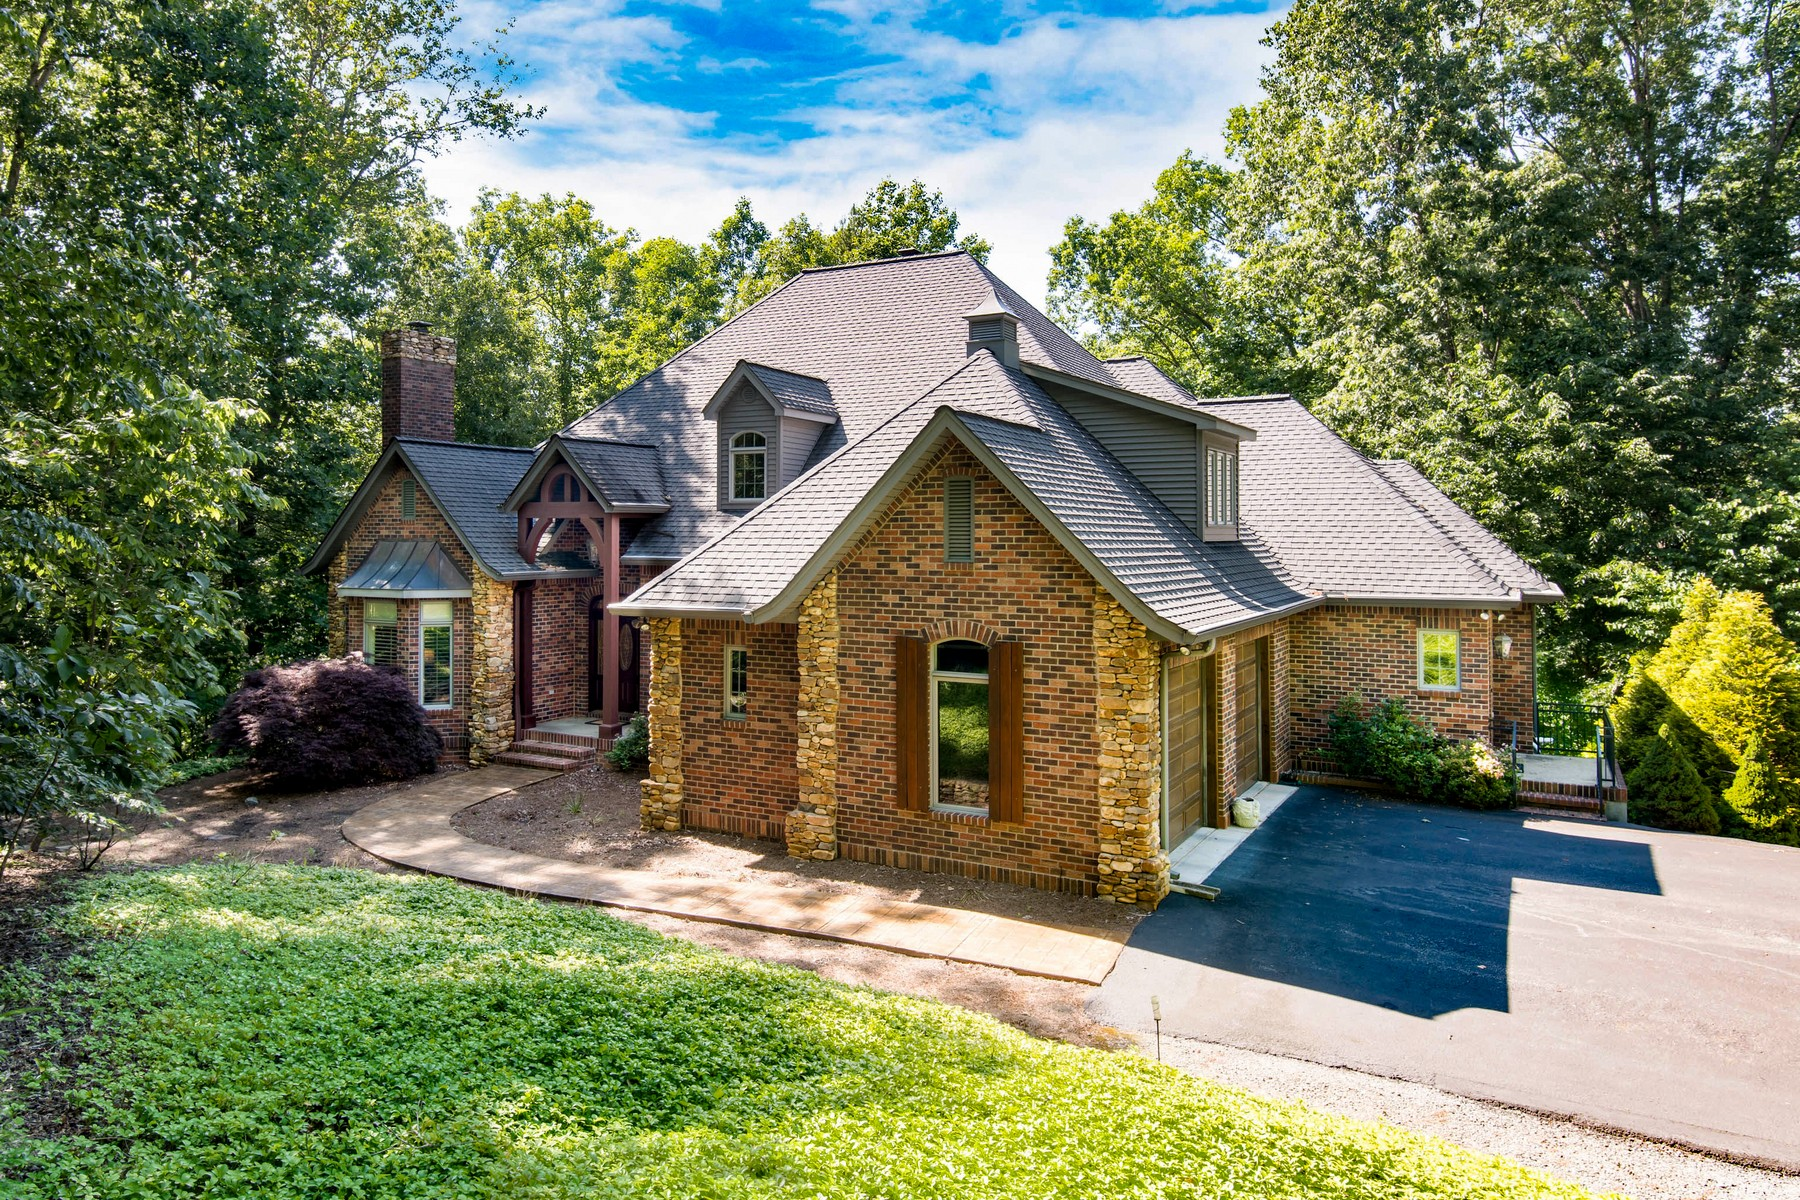 Single Family Homes for Active at 1325 Mcentire Road in Tryon, NC 1325 Mcentire Road Tryon, North Carolina 28782 United States